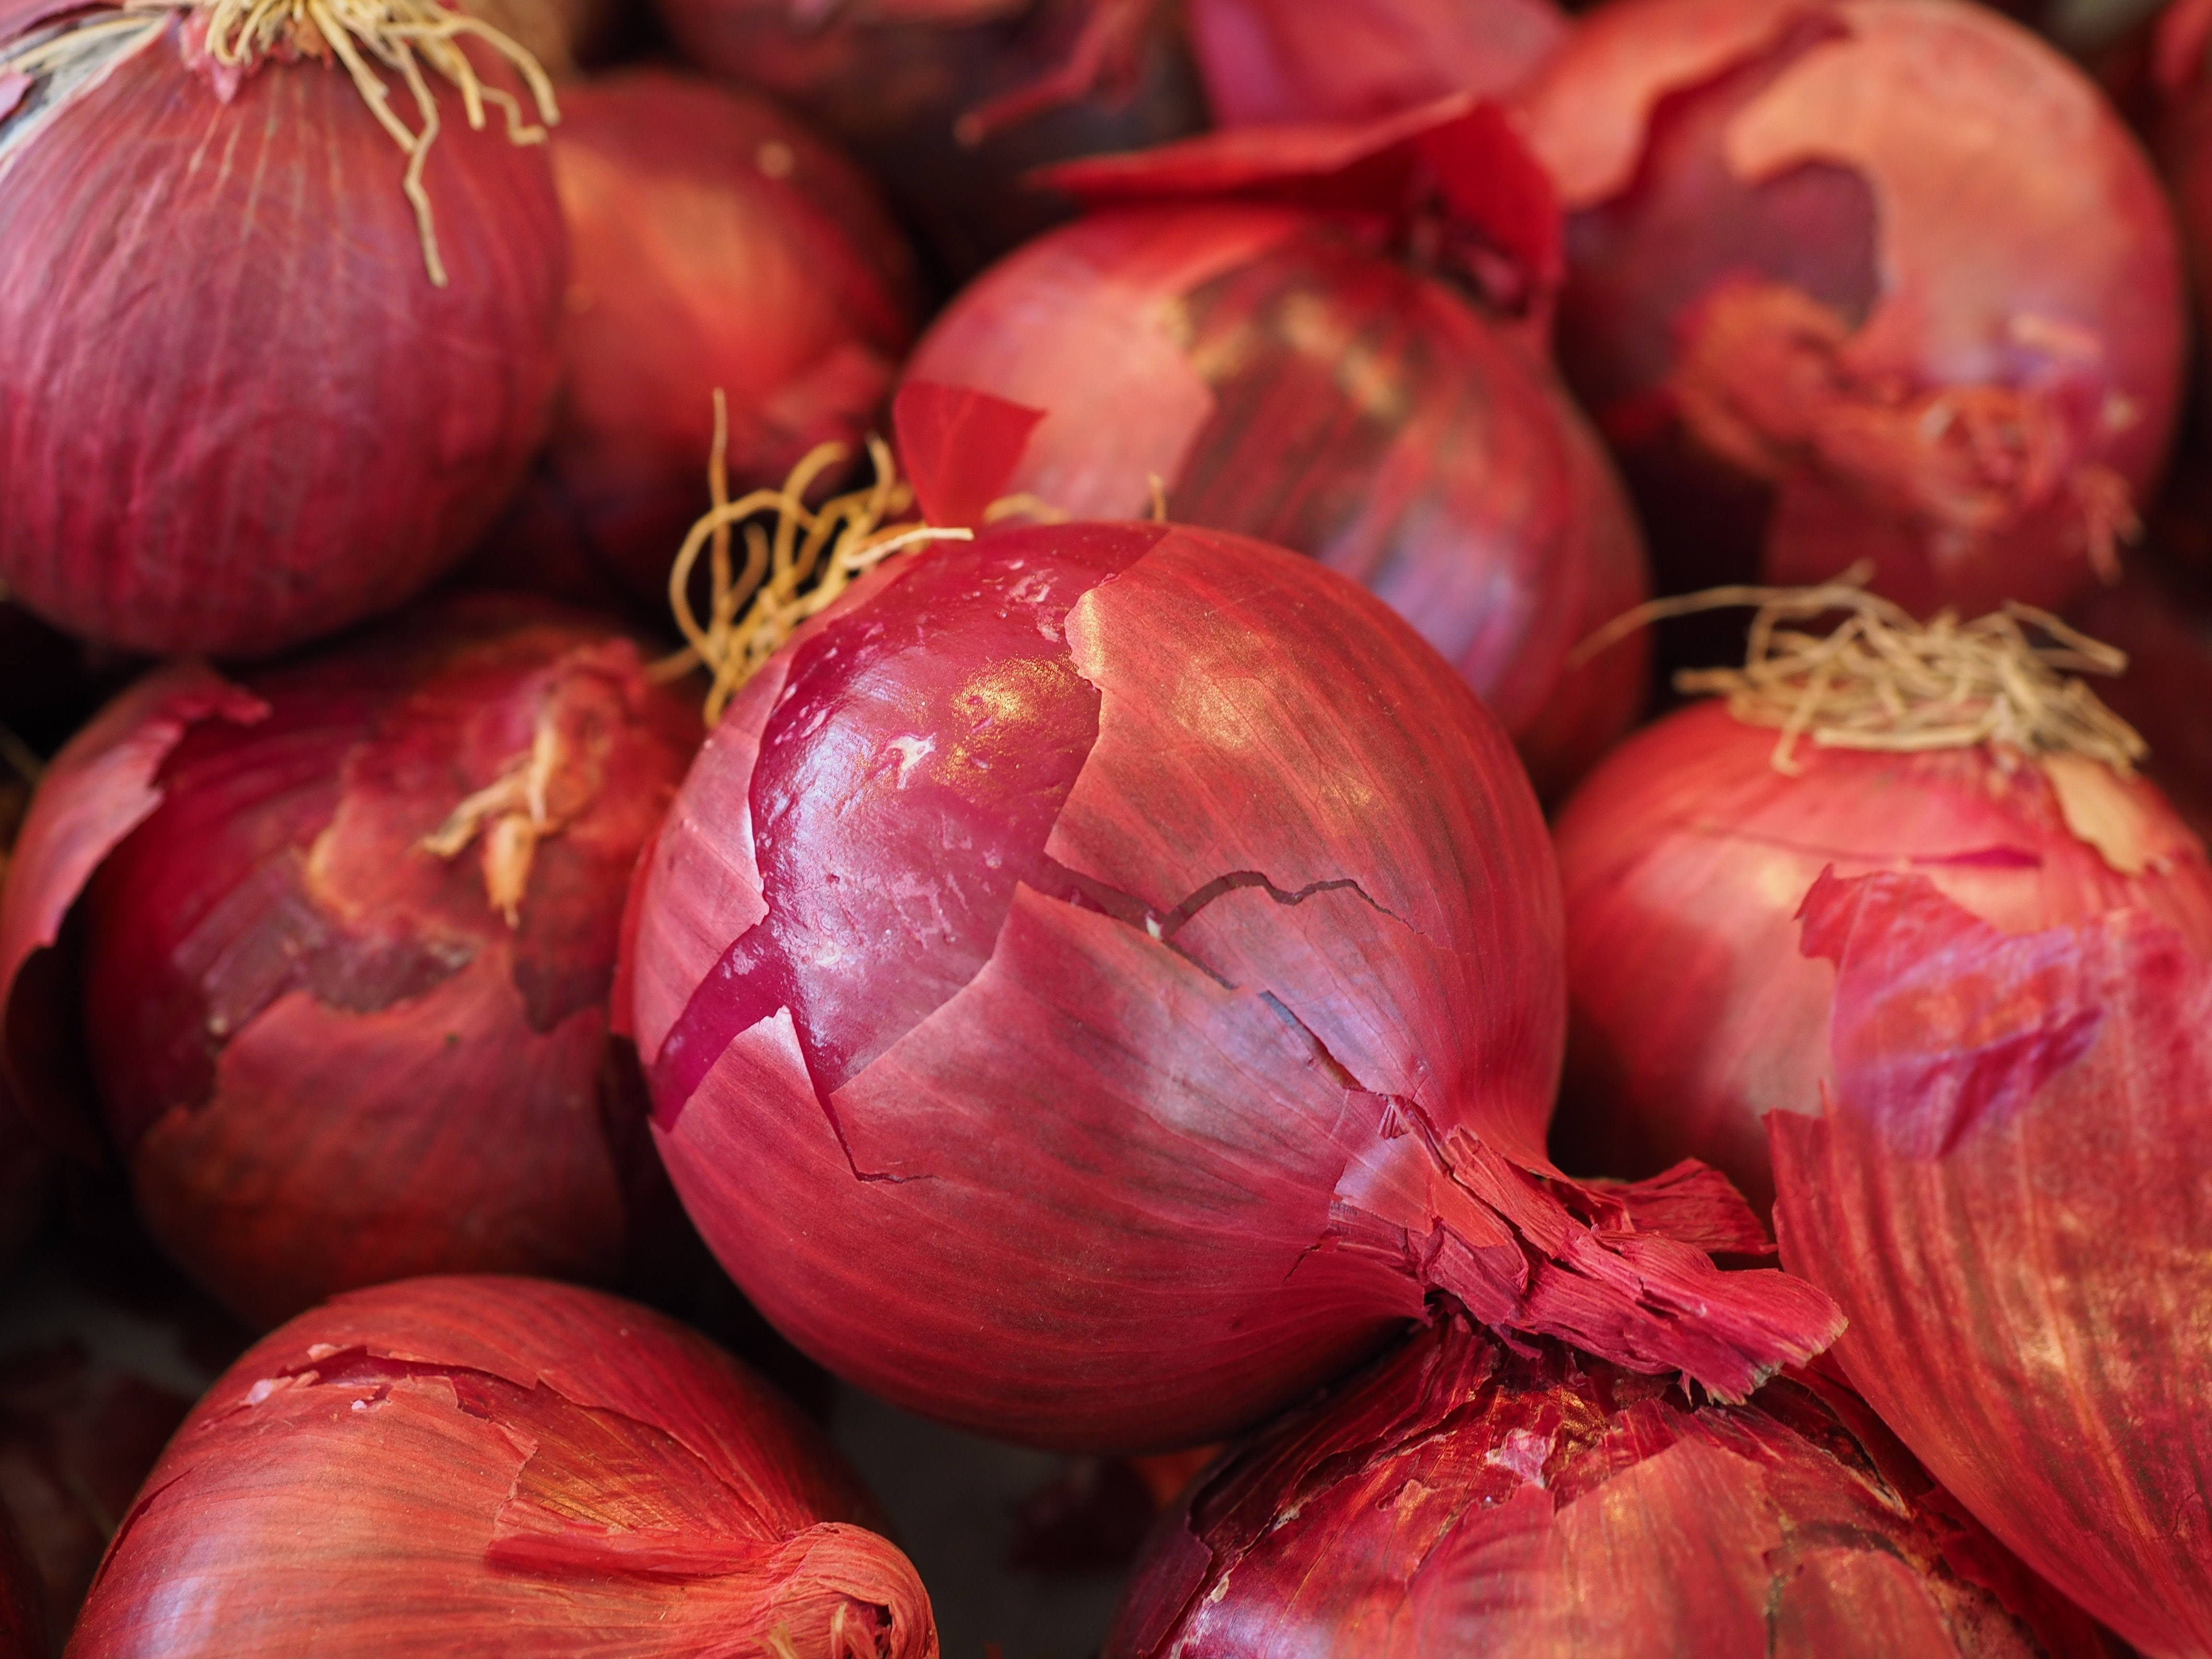 Red onions photo